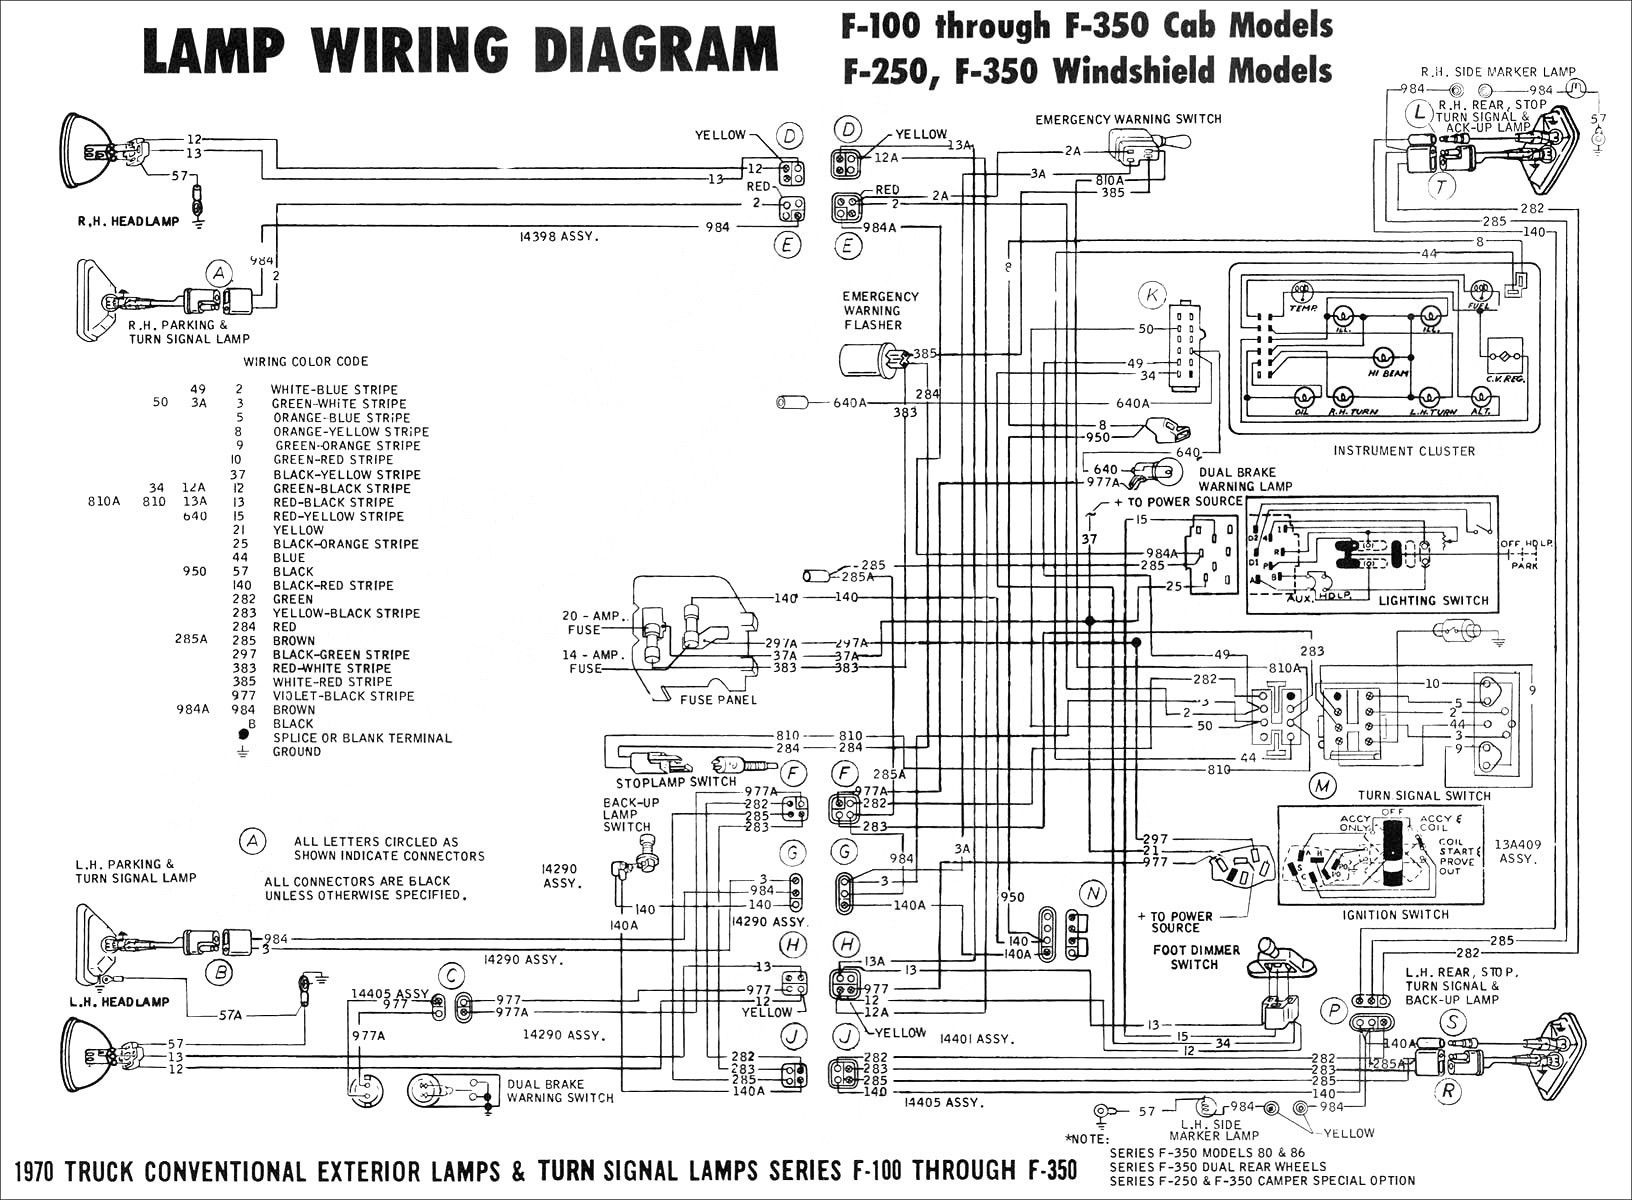 2005 Mustang Engine Diagram In 2020 Trailer Wiring Diagram Electrical Wiring Diagram Diagram